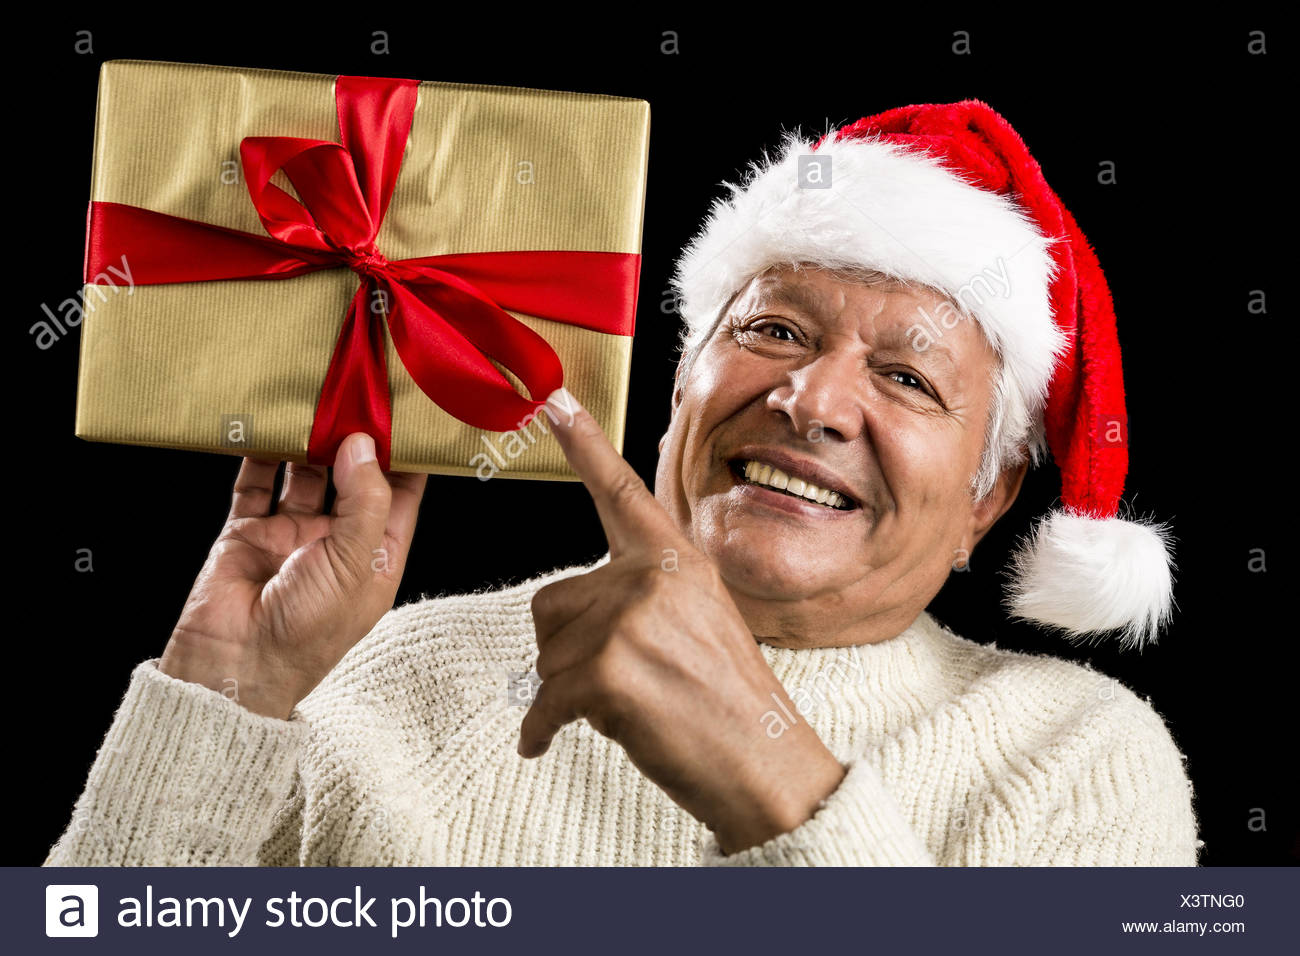 Avid Aged Man Pointing At Golden Wrapped Present Stock Photo